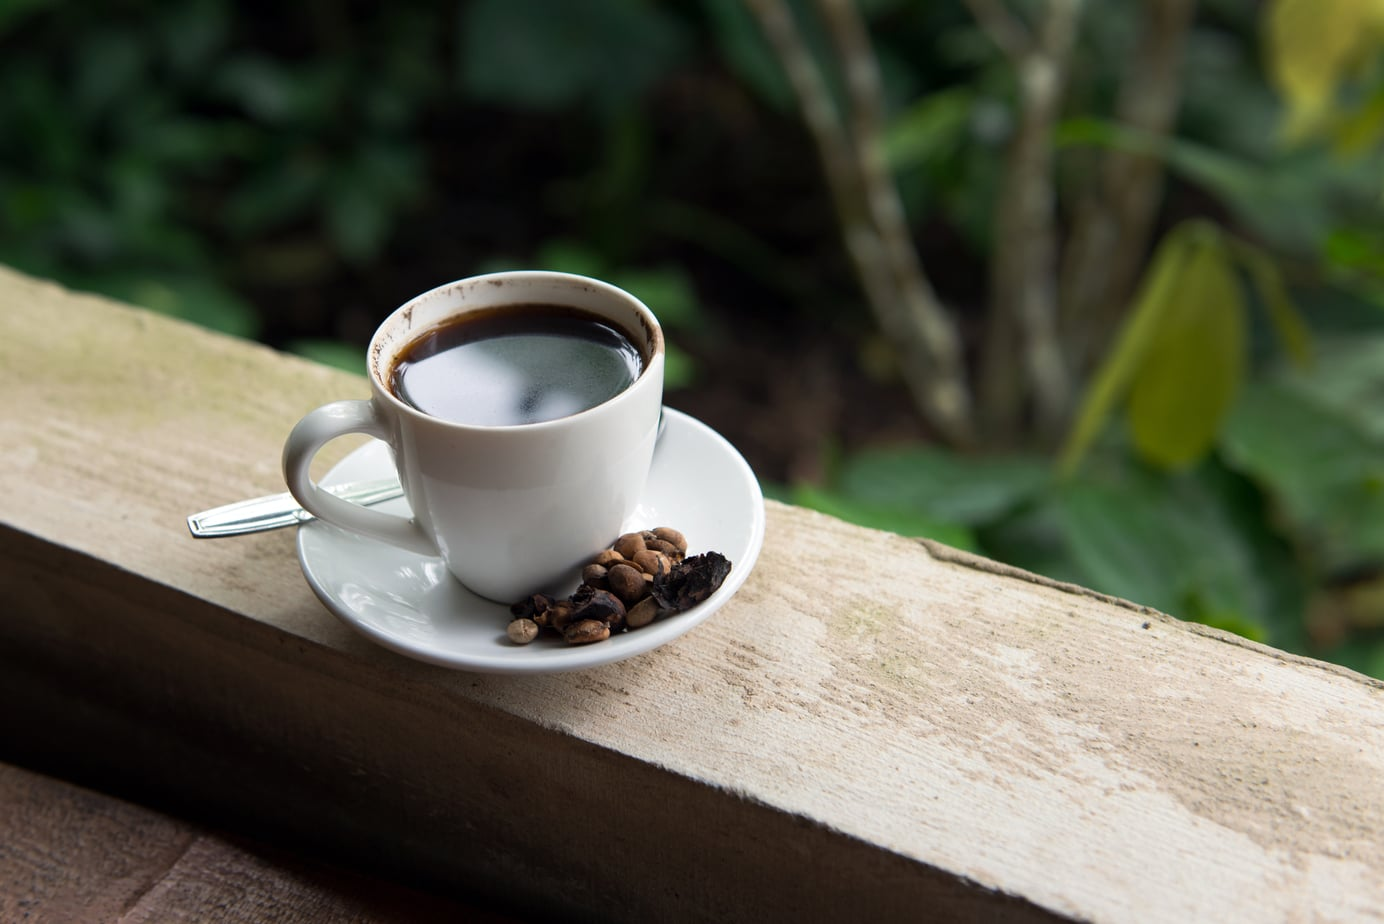 Bali Coffee - Kopi Luwak coffee